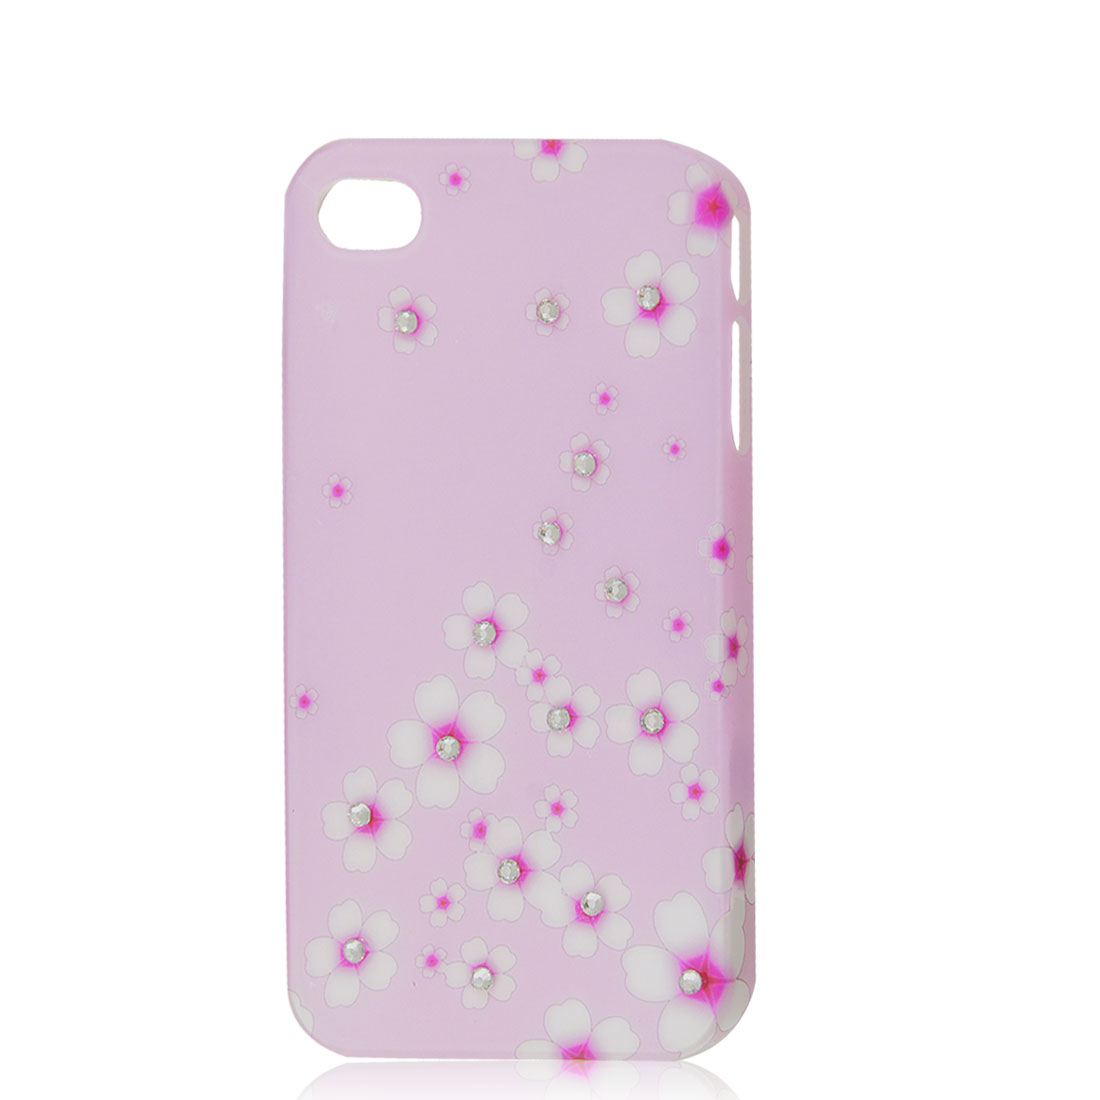 Glitter Rhinestone Flower Hard Case Back Cover Light Pink for iPhone 4 4G